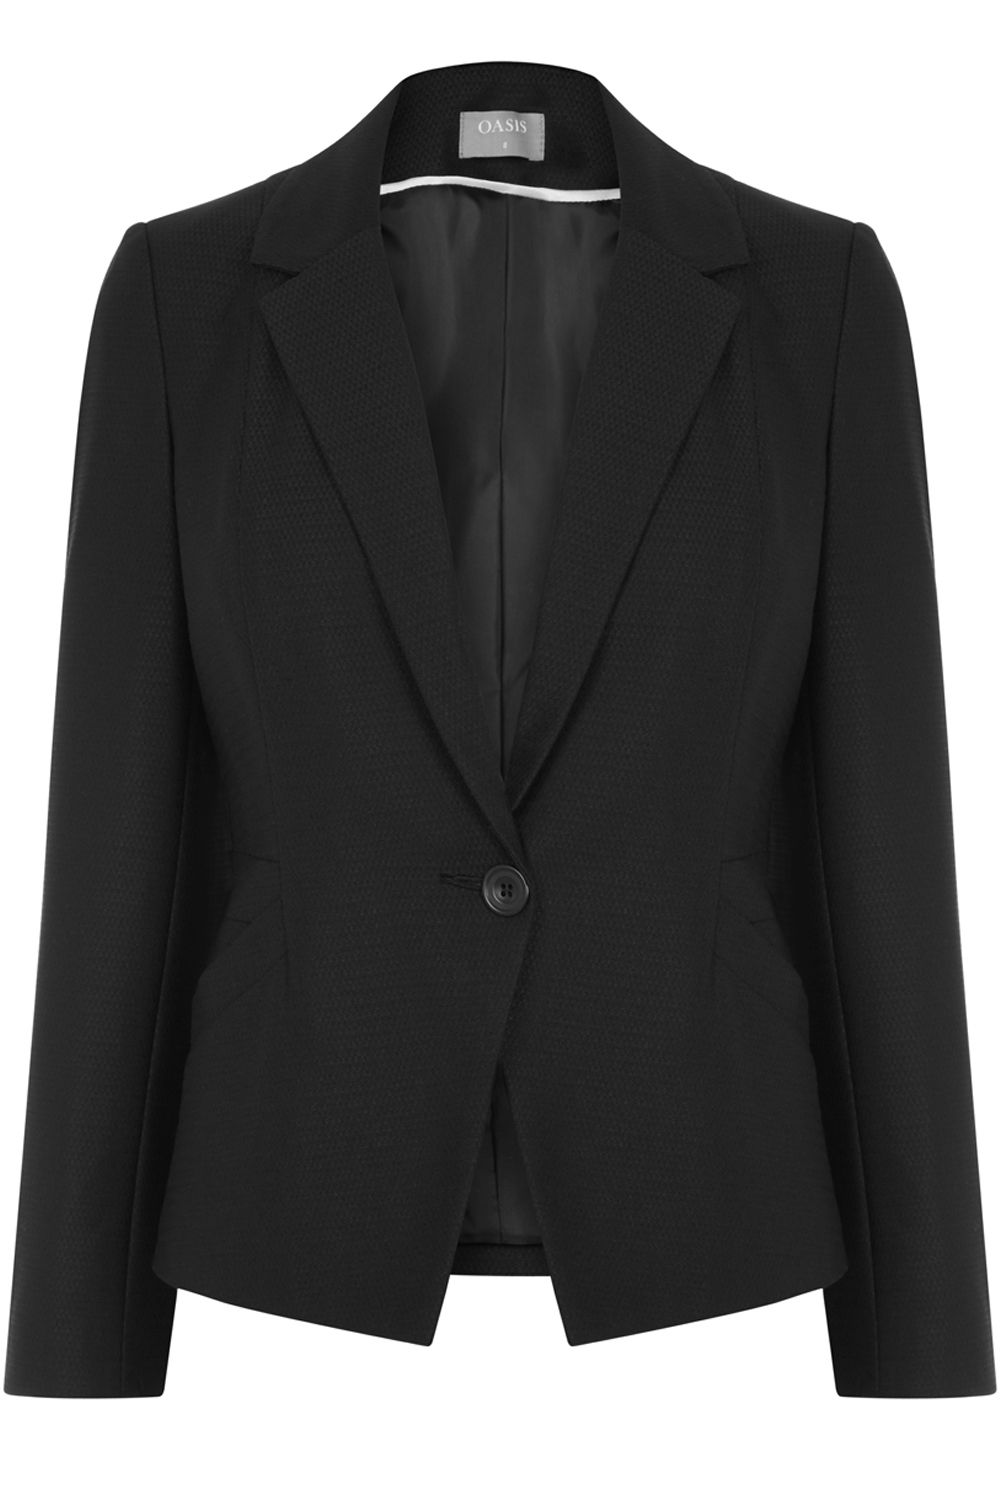 Oasis Hannah Workwear Jacket, Black